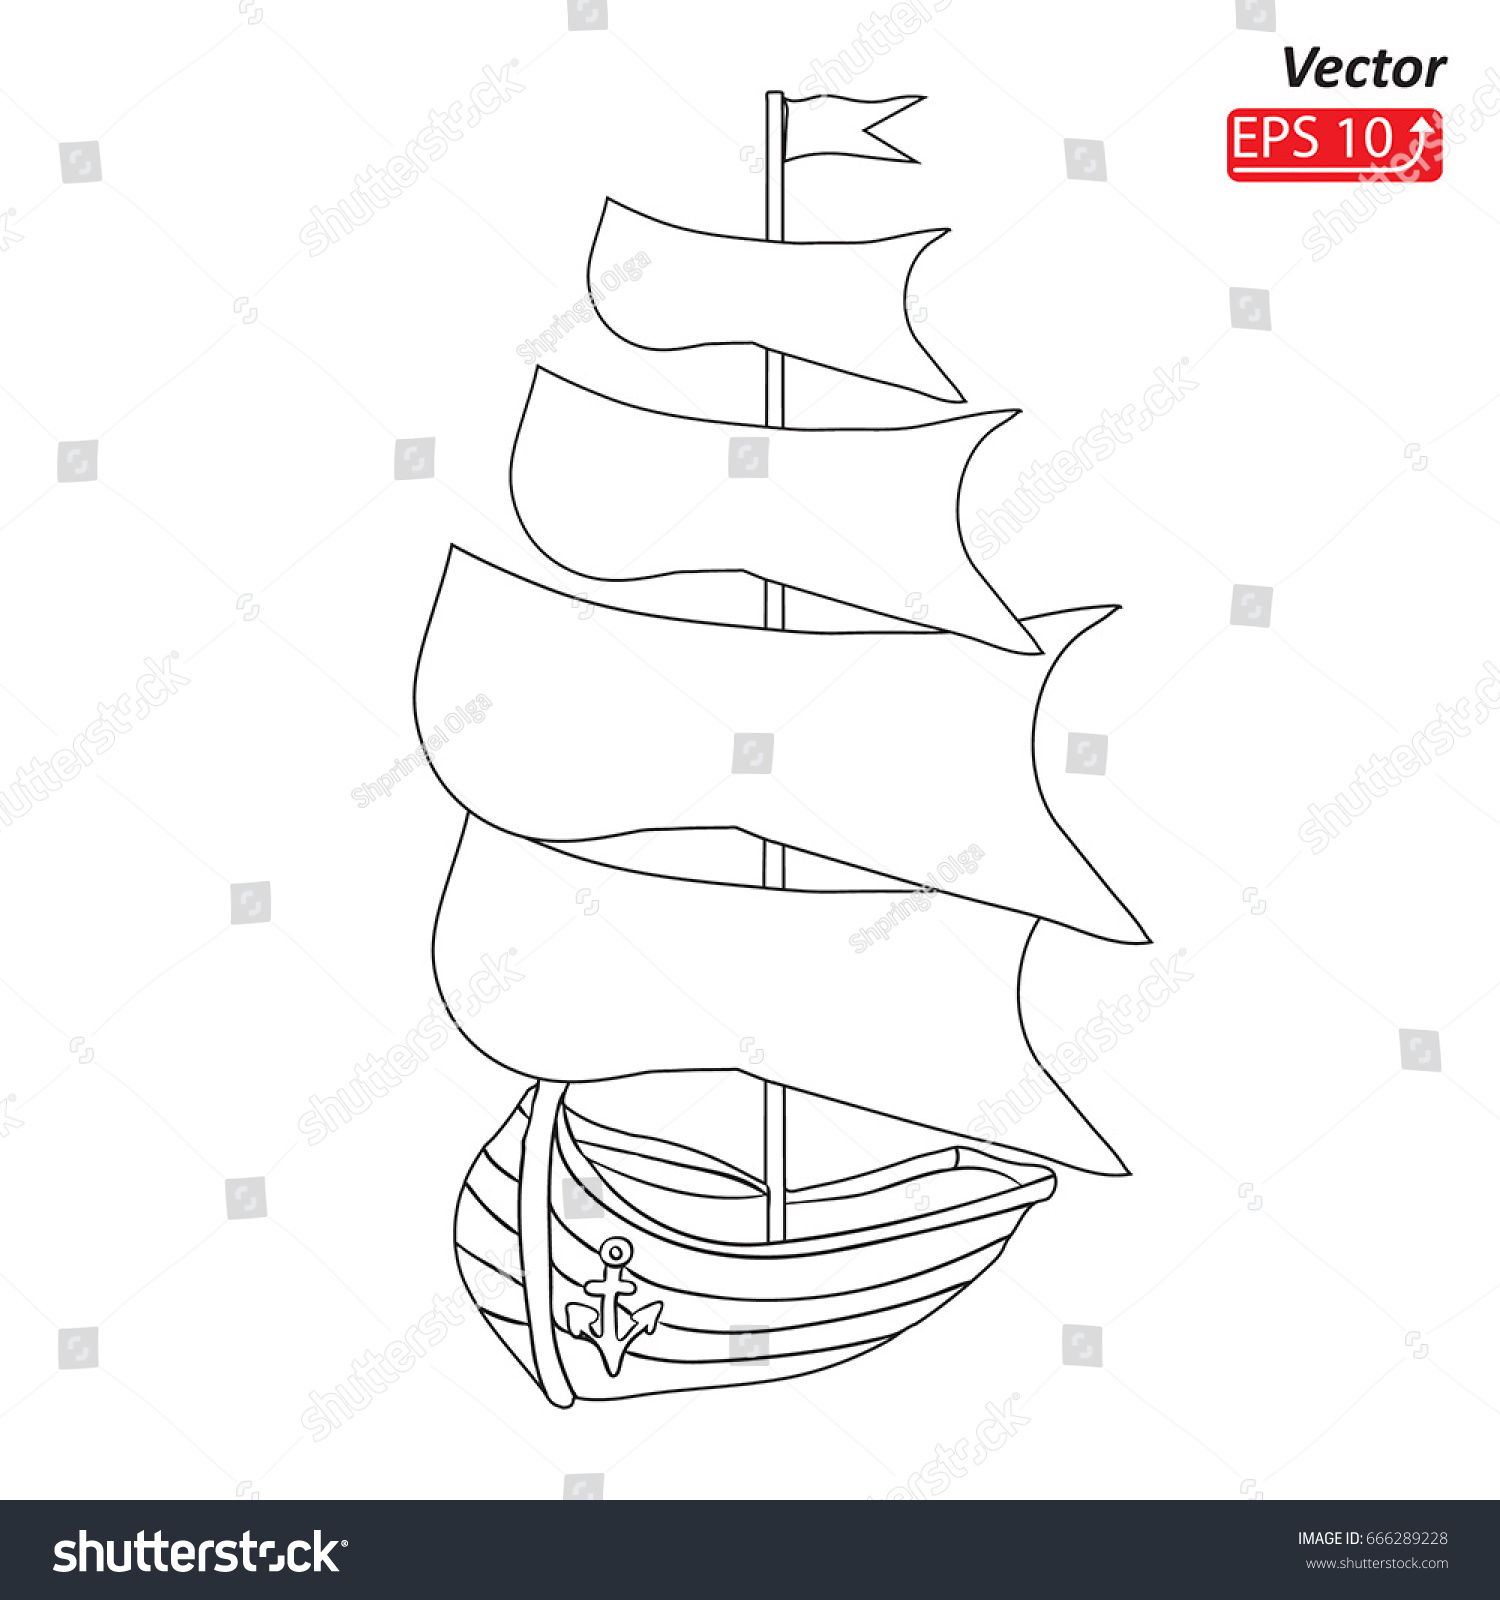 Sailing ship boat contour drawing sketch stock vector 666289228 sailing ship boat contour drawing sketch silhouette sailboat isolated on white background pooptronica Choice Image